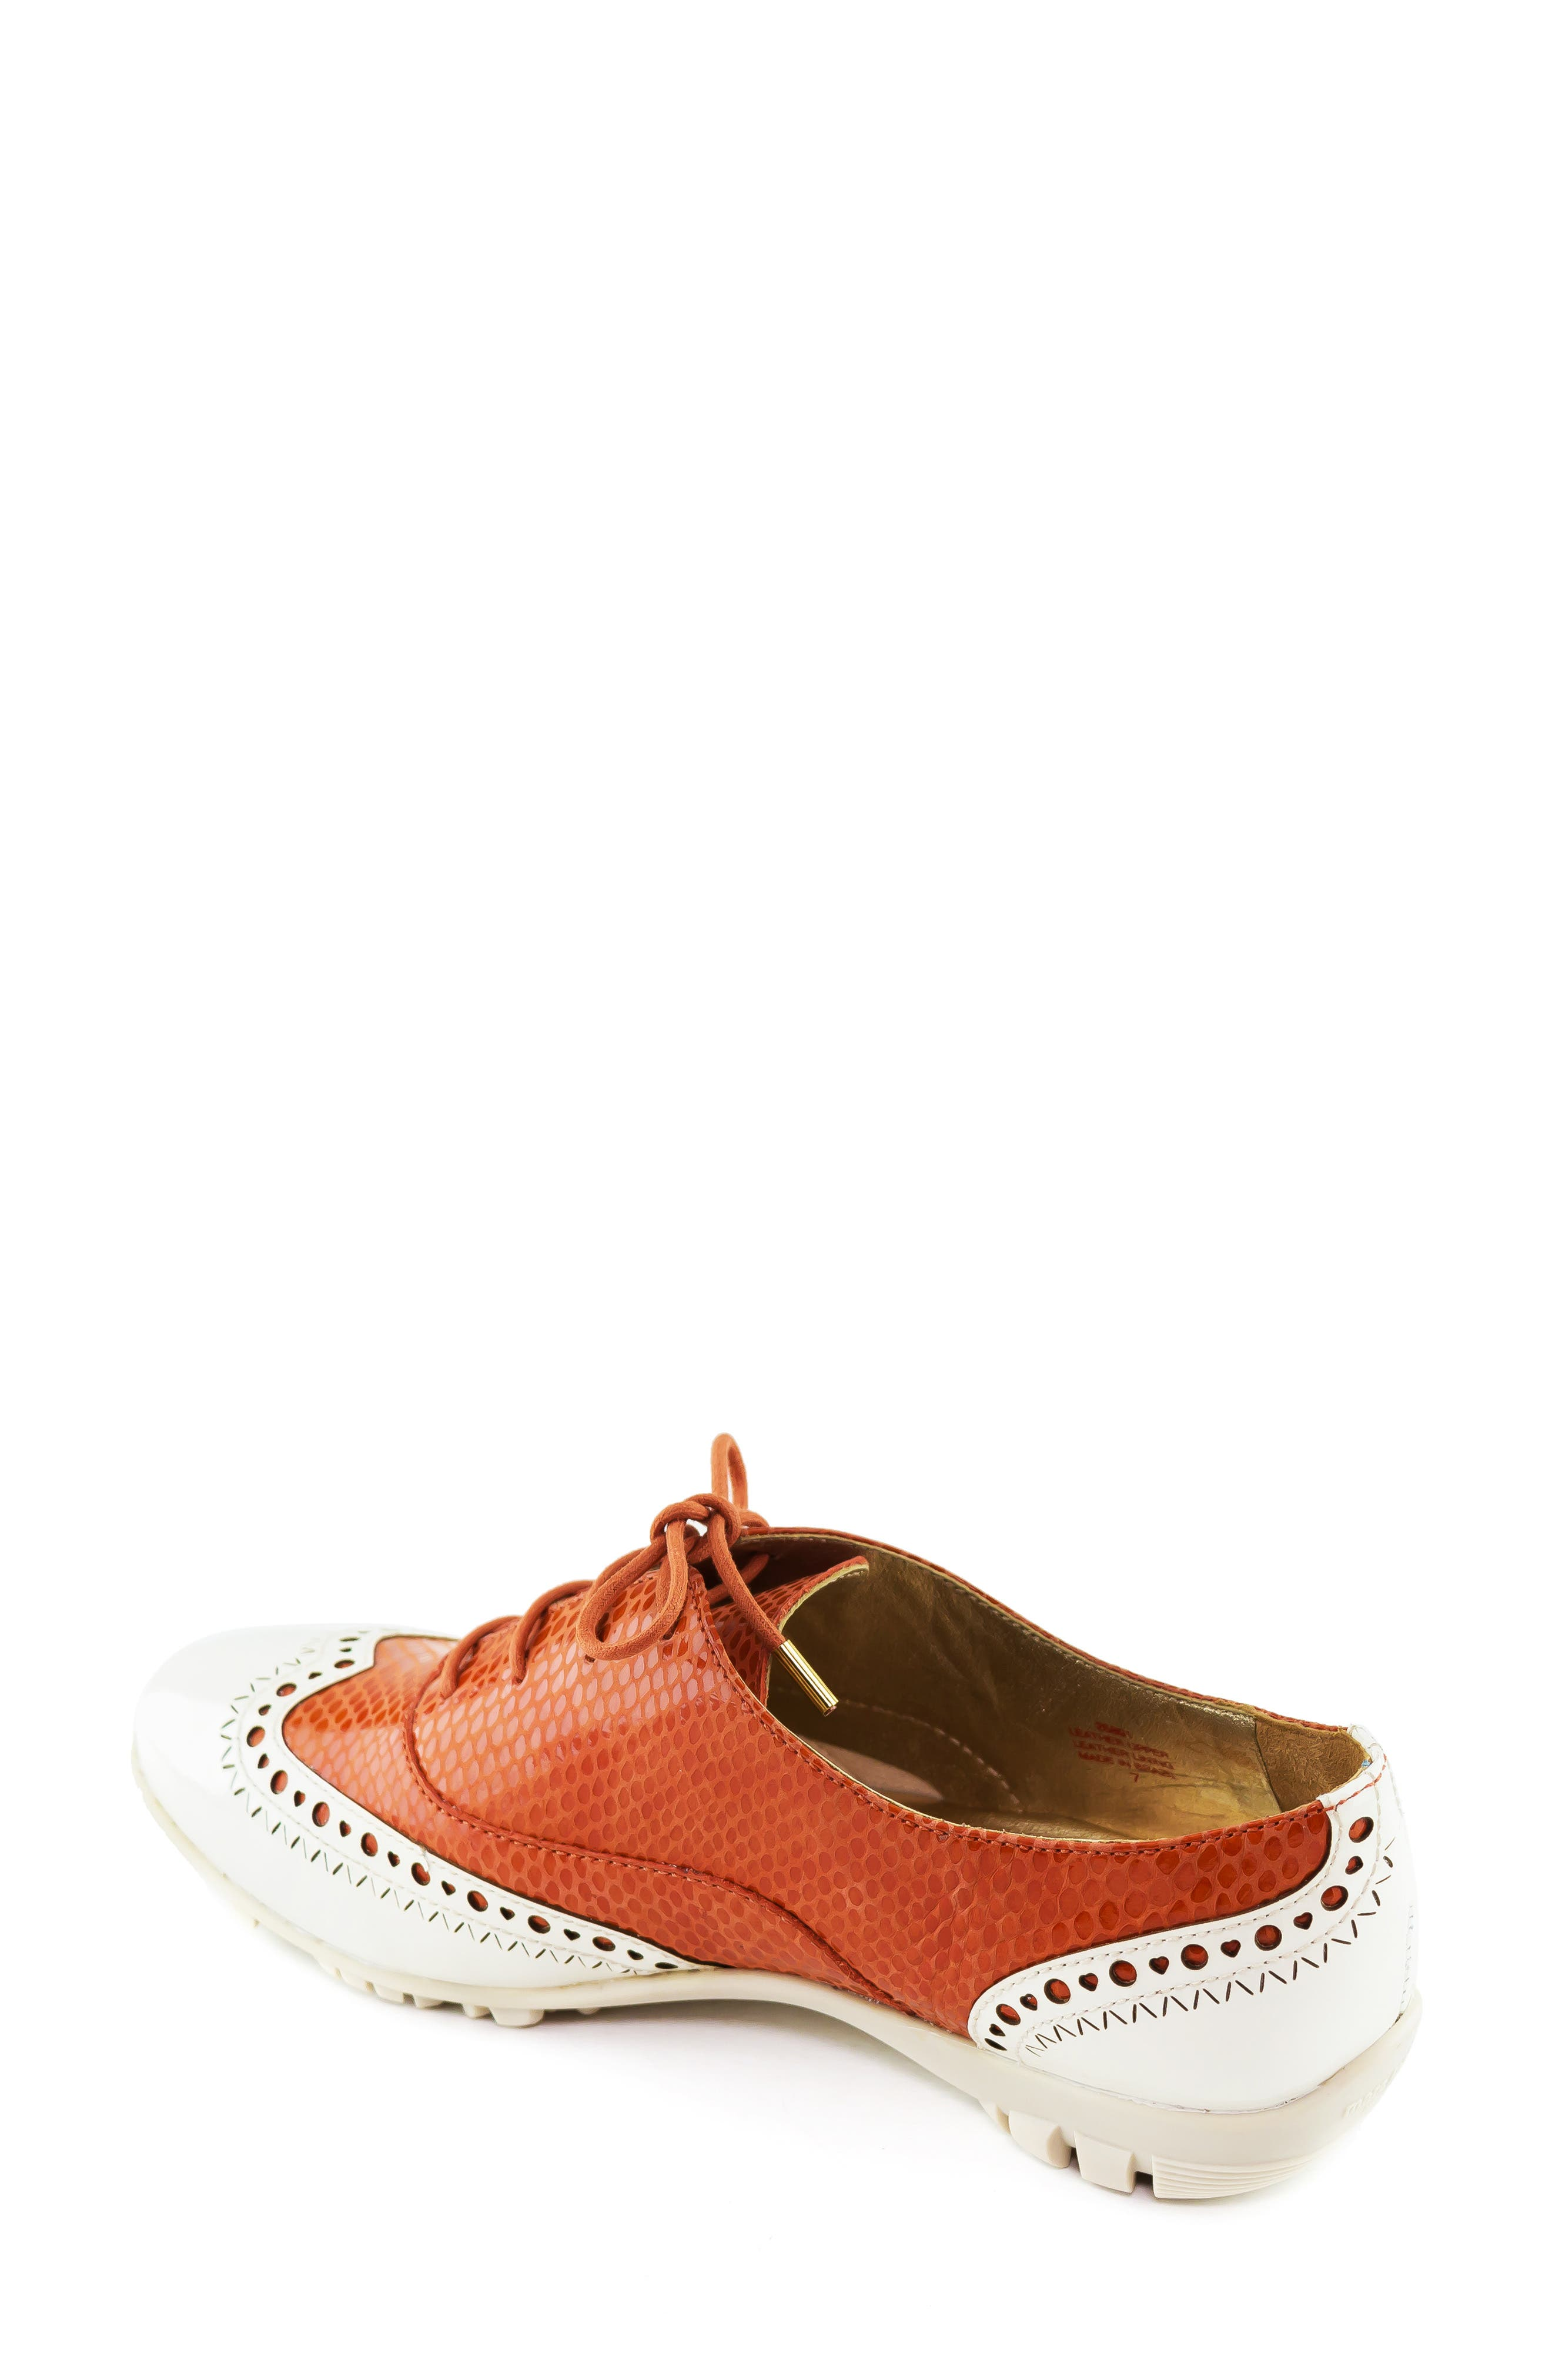 MARC JOSEPH NEW YORK, NYC Golf Loafer, Alternate thumbnail 2, color, CORAL SNAKE PRINT LEATHER